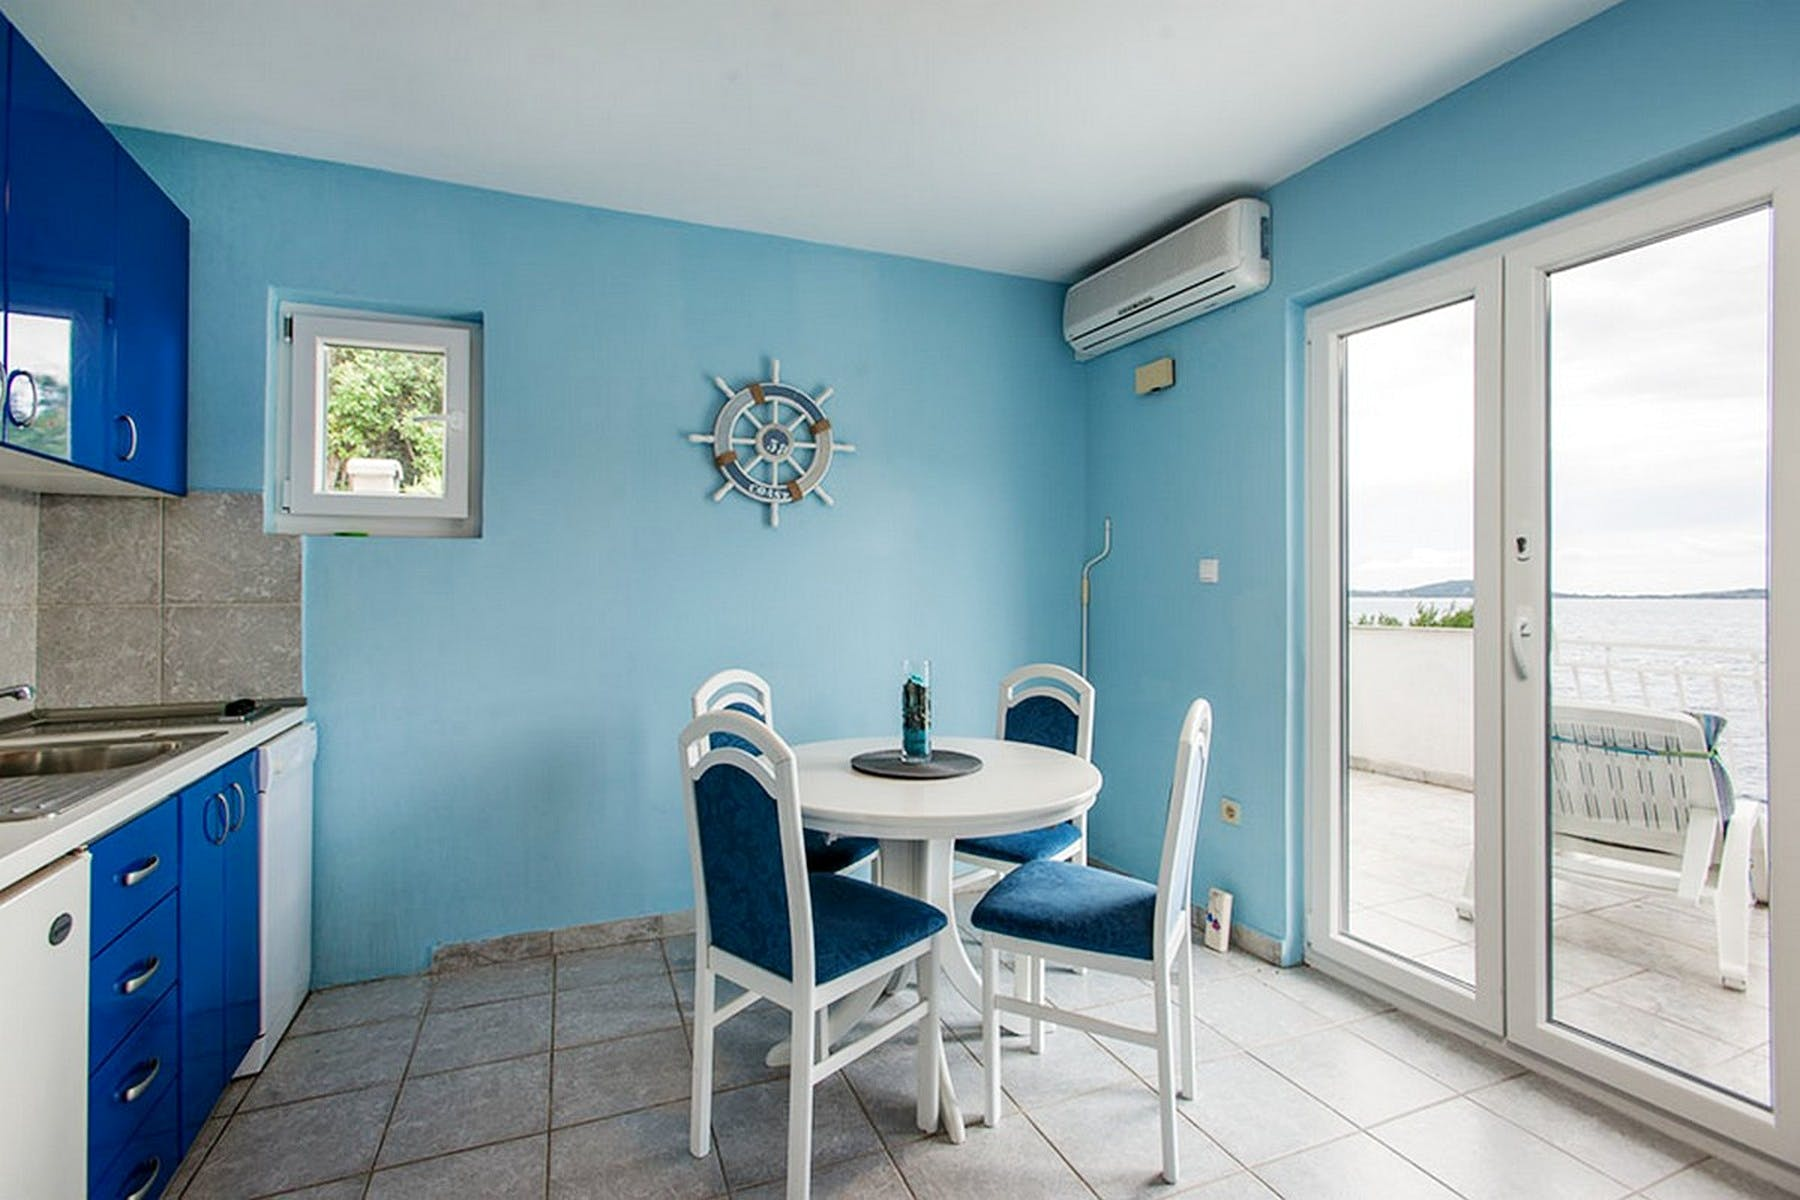 Dining area in calming, blue shades